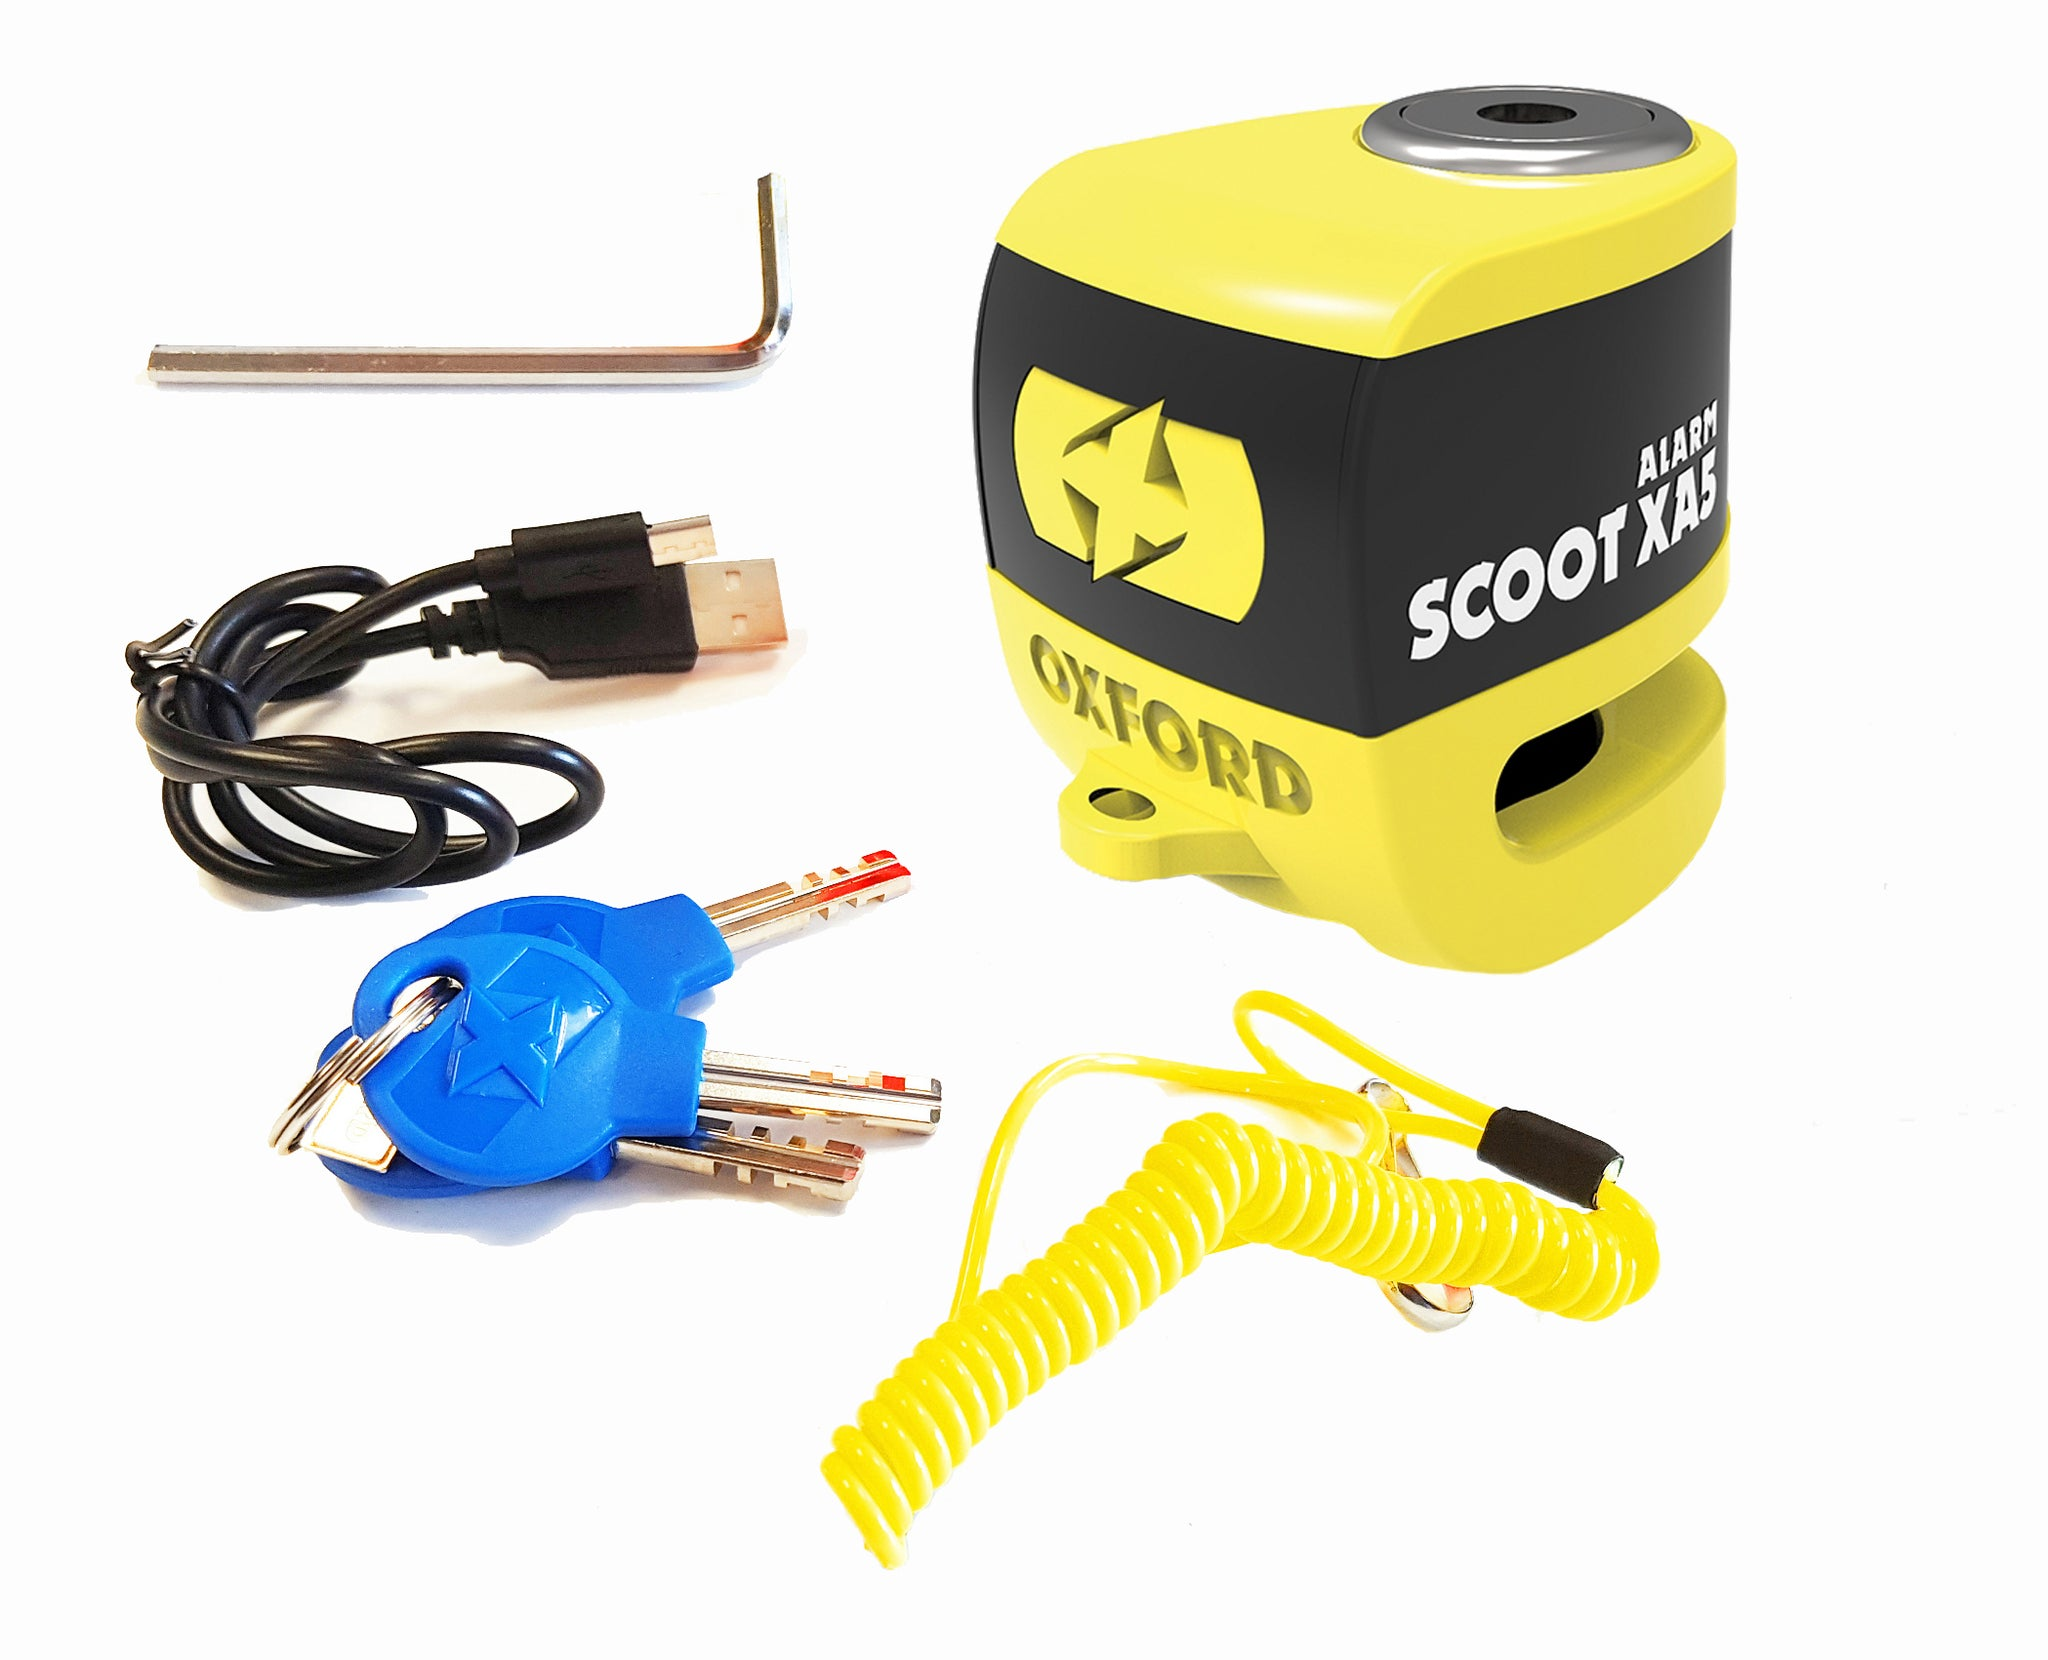 Keeway Target 125 Oxford SCOOT XA5 LK287 Security Motorbike Yellow Disc Lock